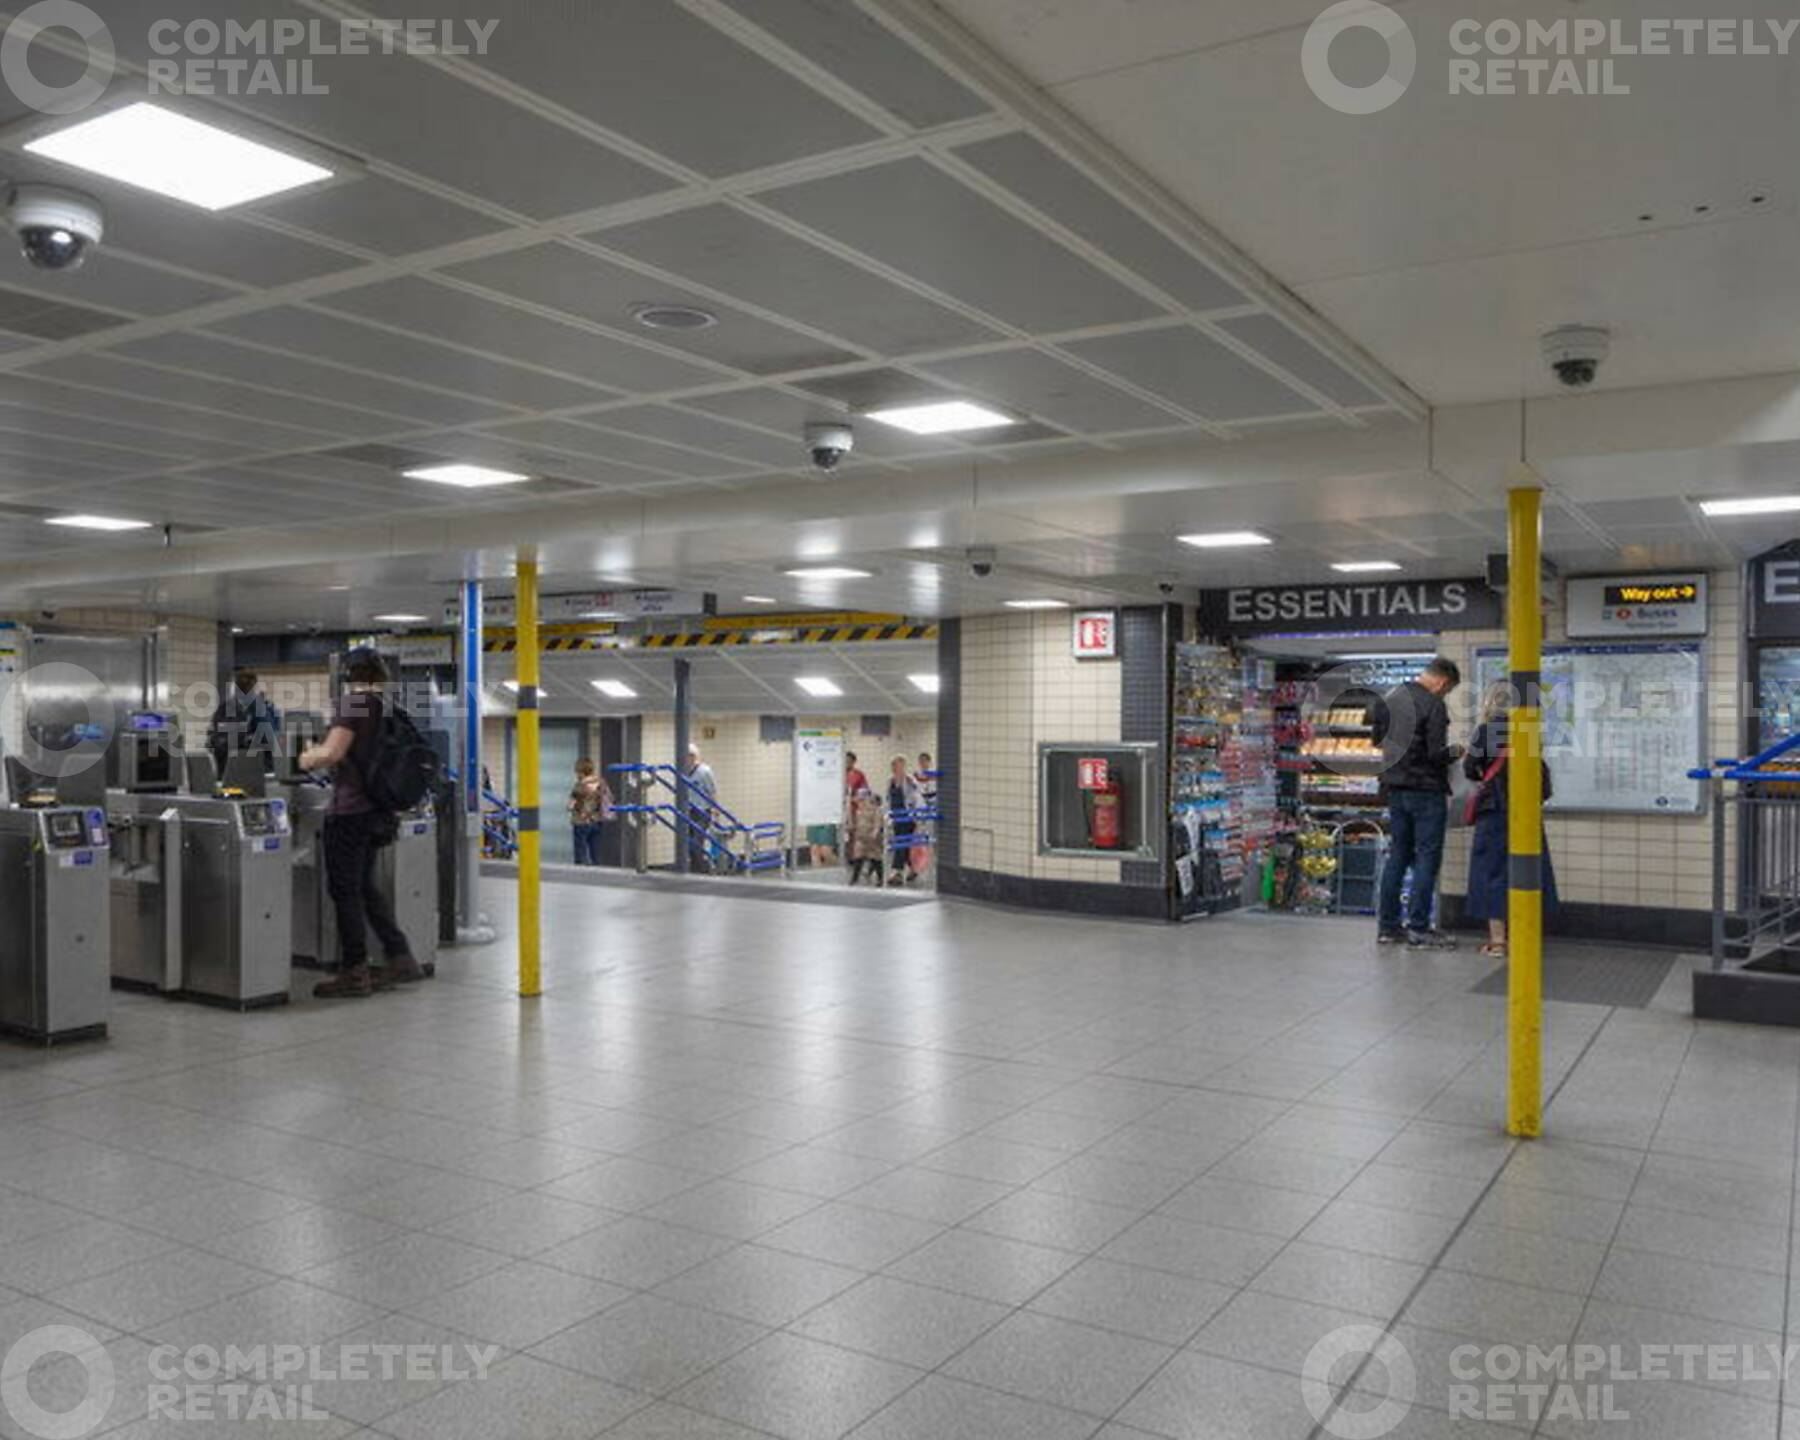 District and Circle Line Ticket Hall Unit